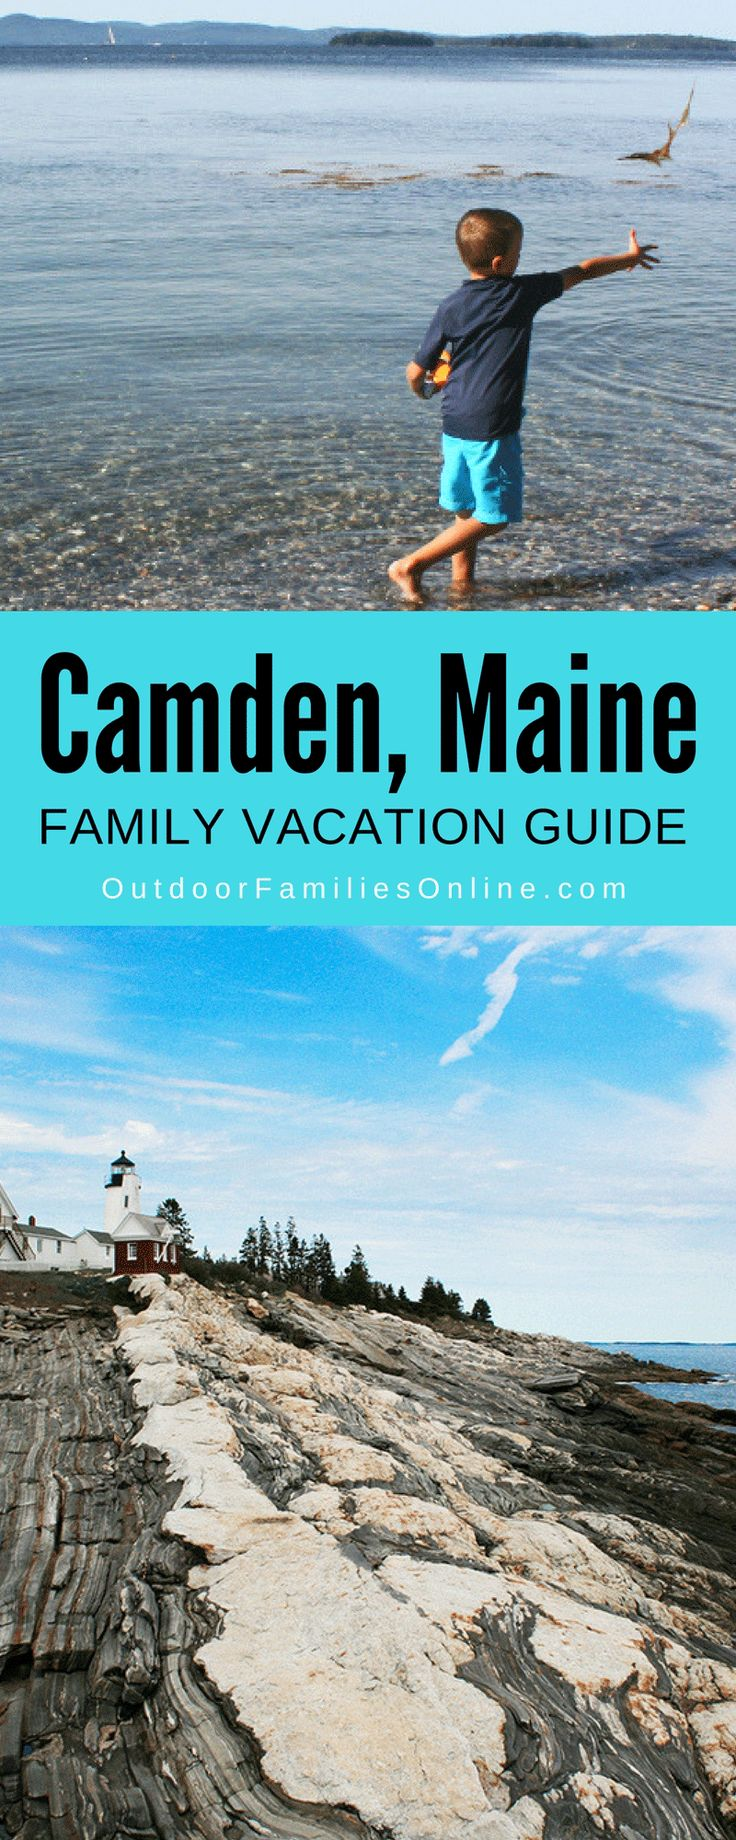 Explore rocky beaches, sail bright blue atlantic waters, and enjoy fun-filled outdoor family excursions in Camden, Maine with this family vacation guide.